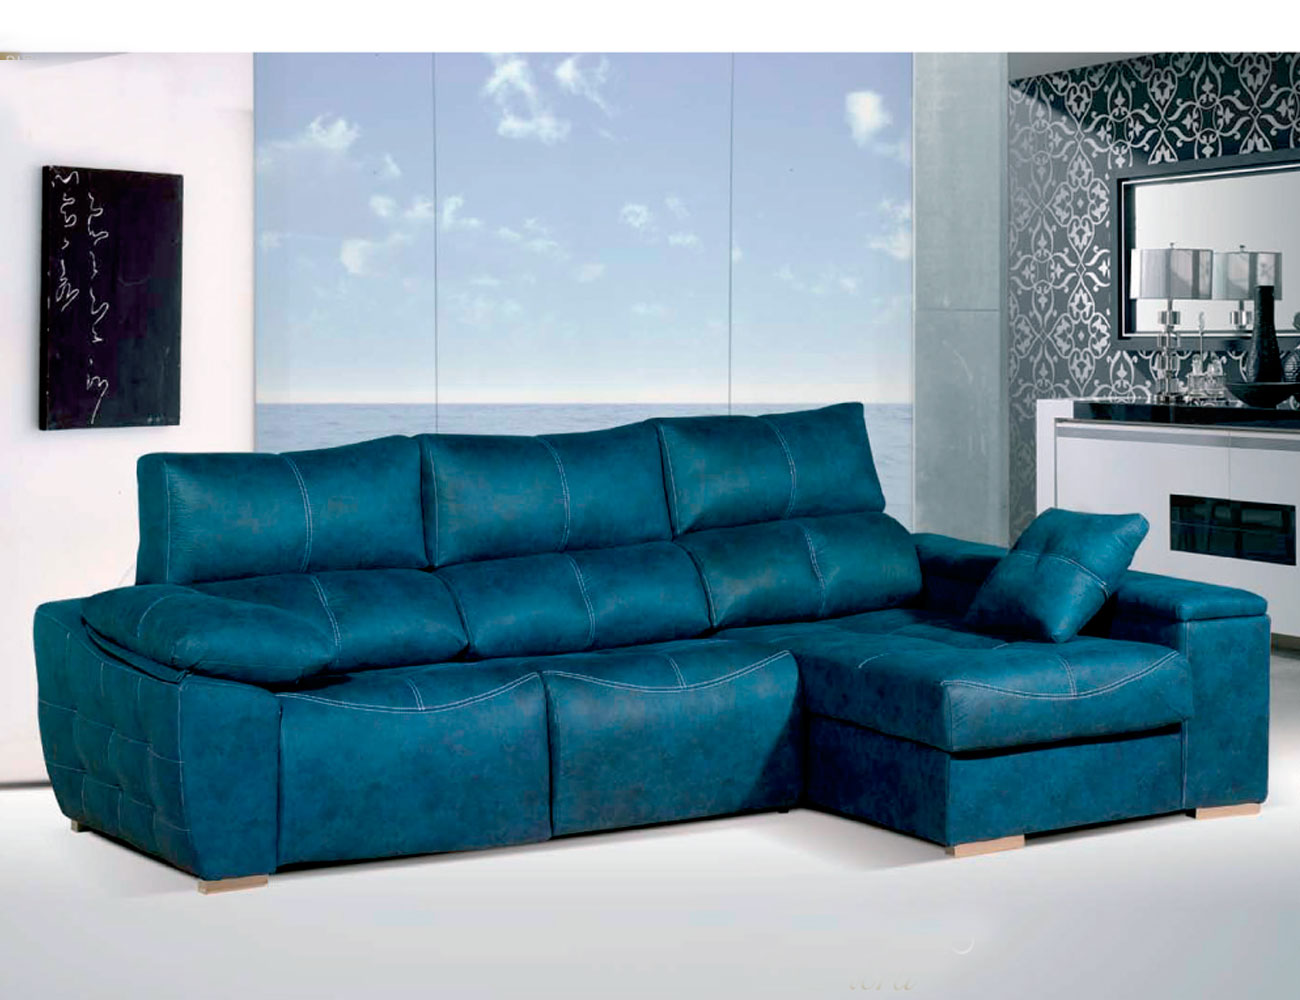 Sofa chaiselongue relax 2 motores anti manchas turquesa35